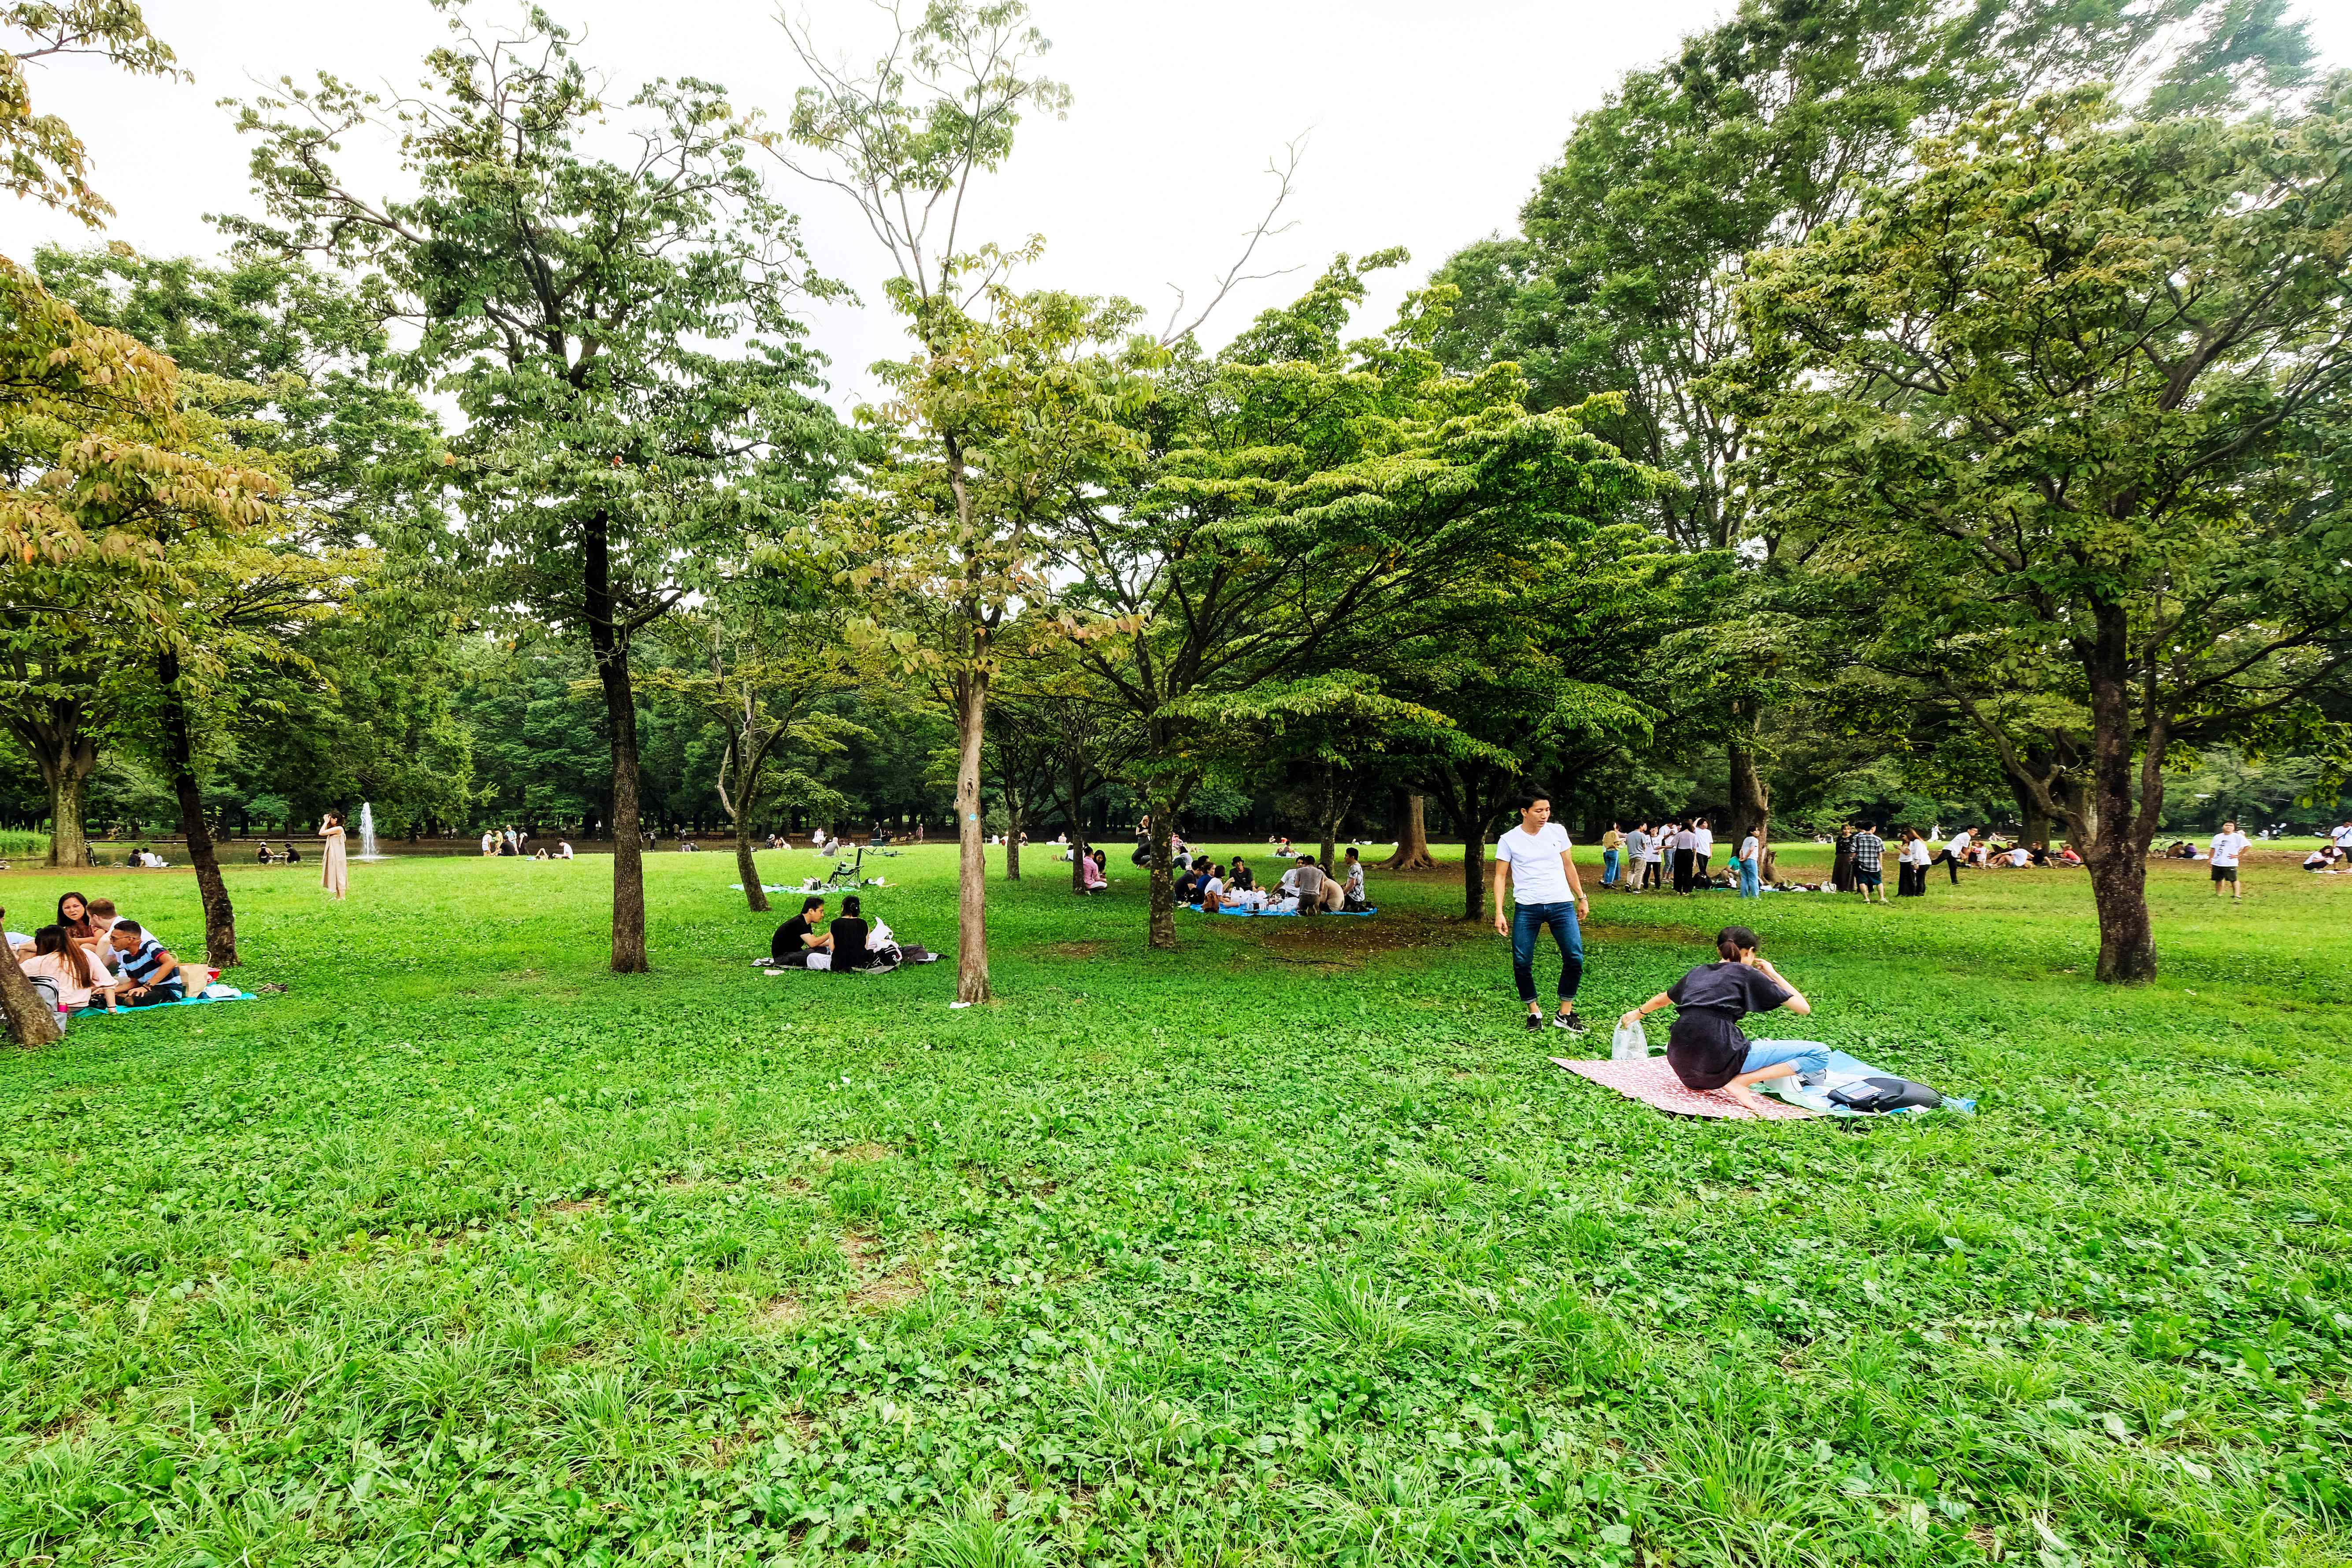 People hanging out in Yoyogi Park